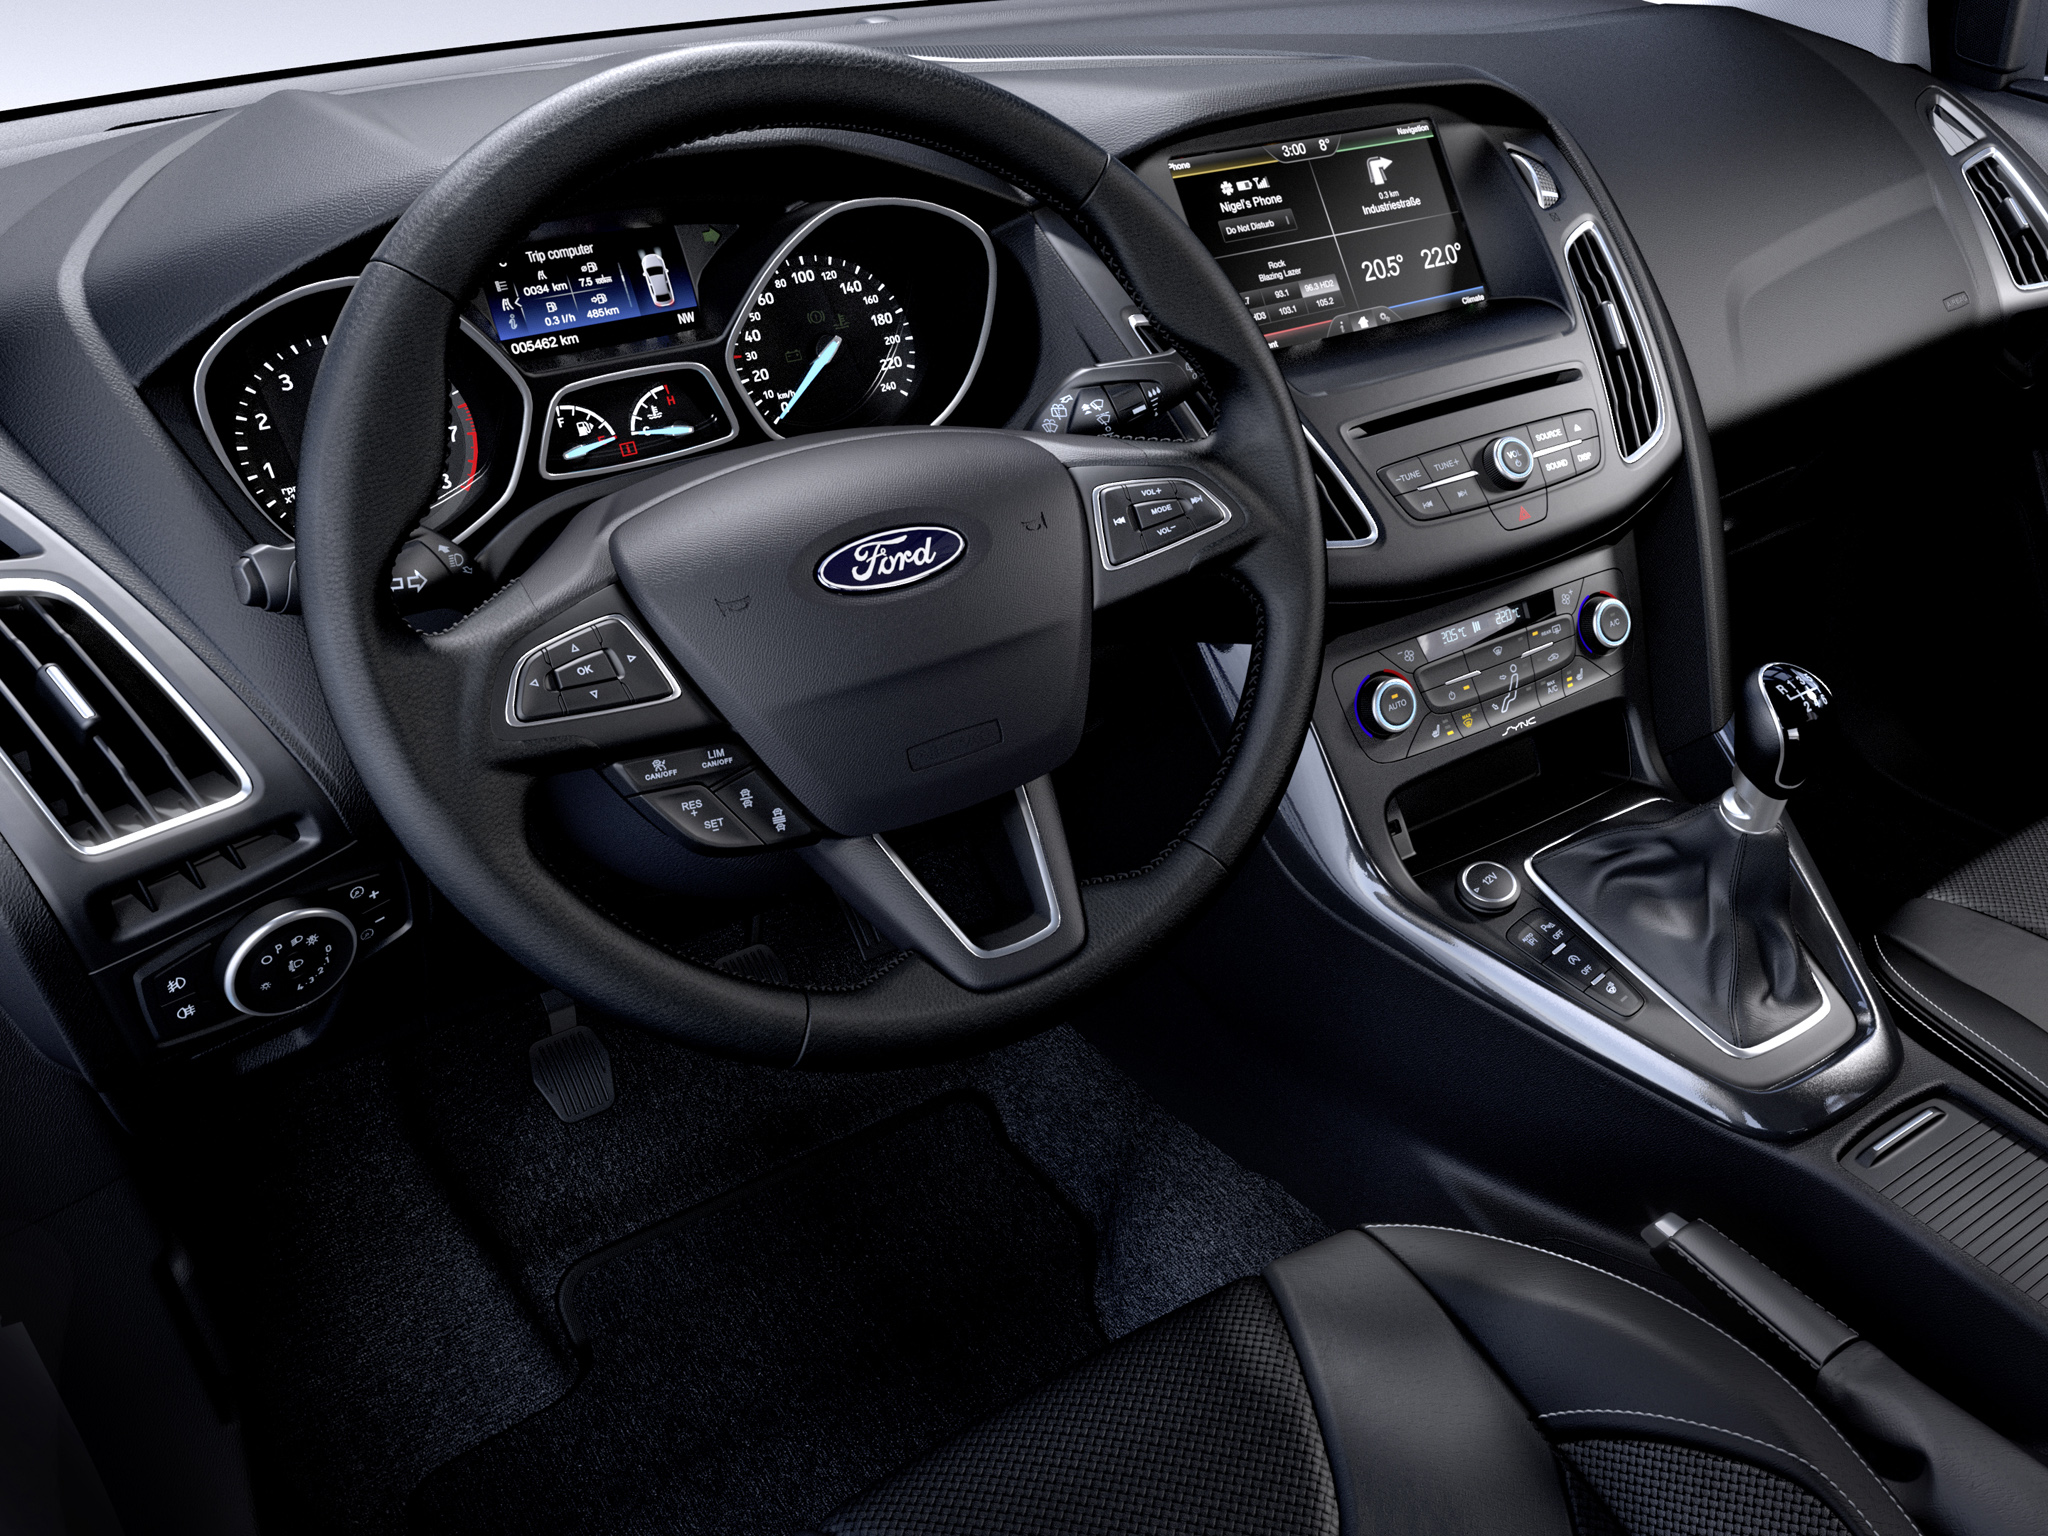 2017 Ford F 150 Interior >> 2014 Ford Focus Estate / Touring Leaked Photos Show New ...